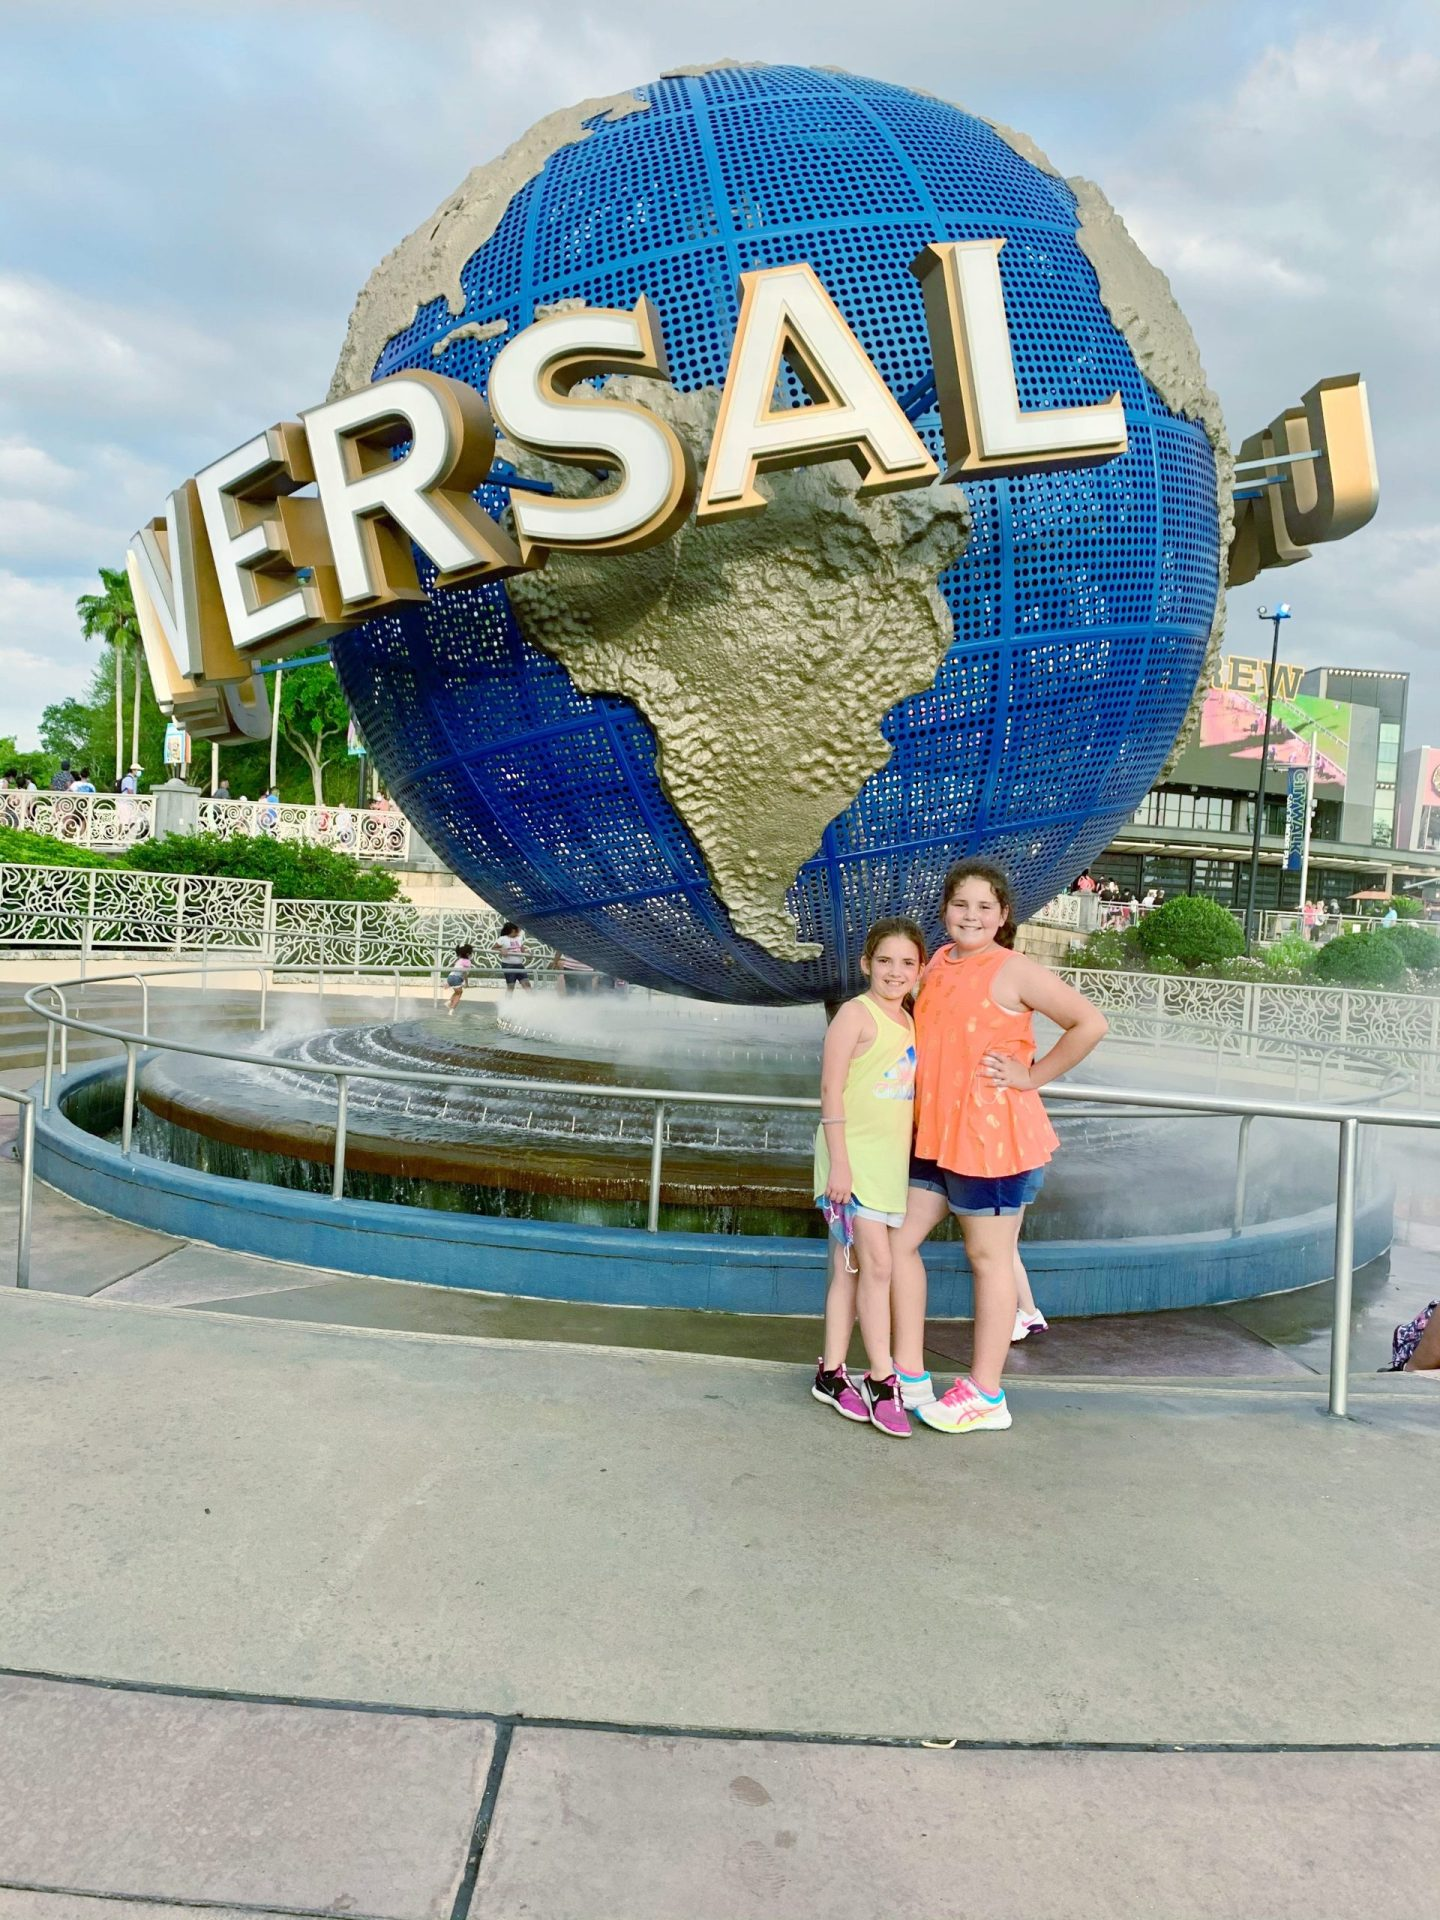 Movies to watch before your trip to Universal Orlando.